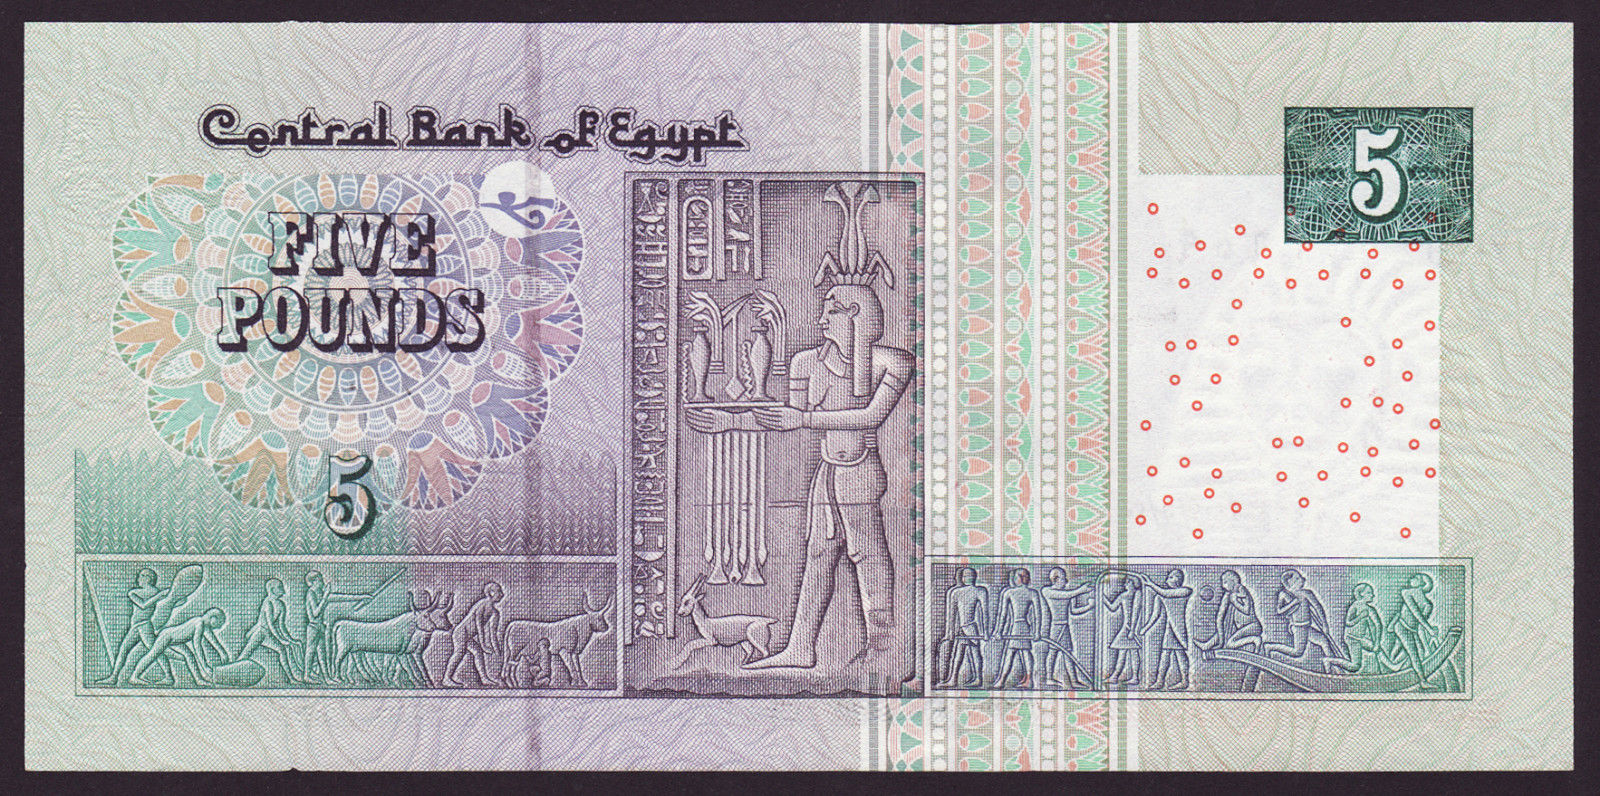 Egypt 5 Pounds Banknote 2001 World Banknotes Amp Coins